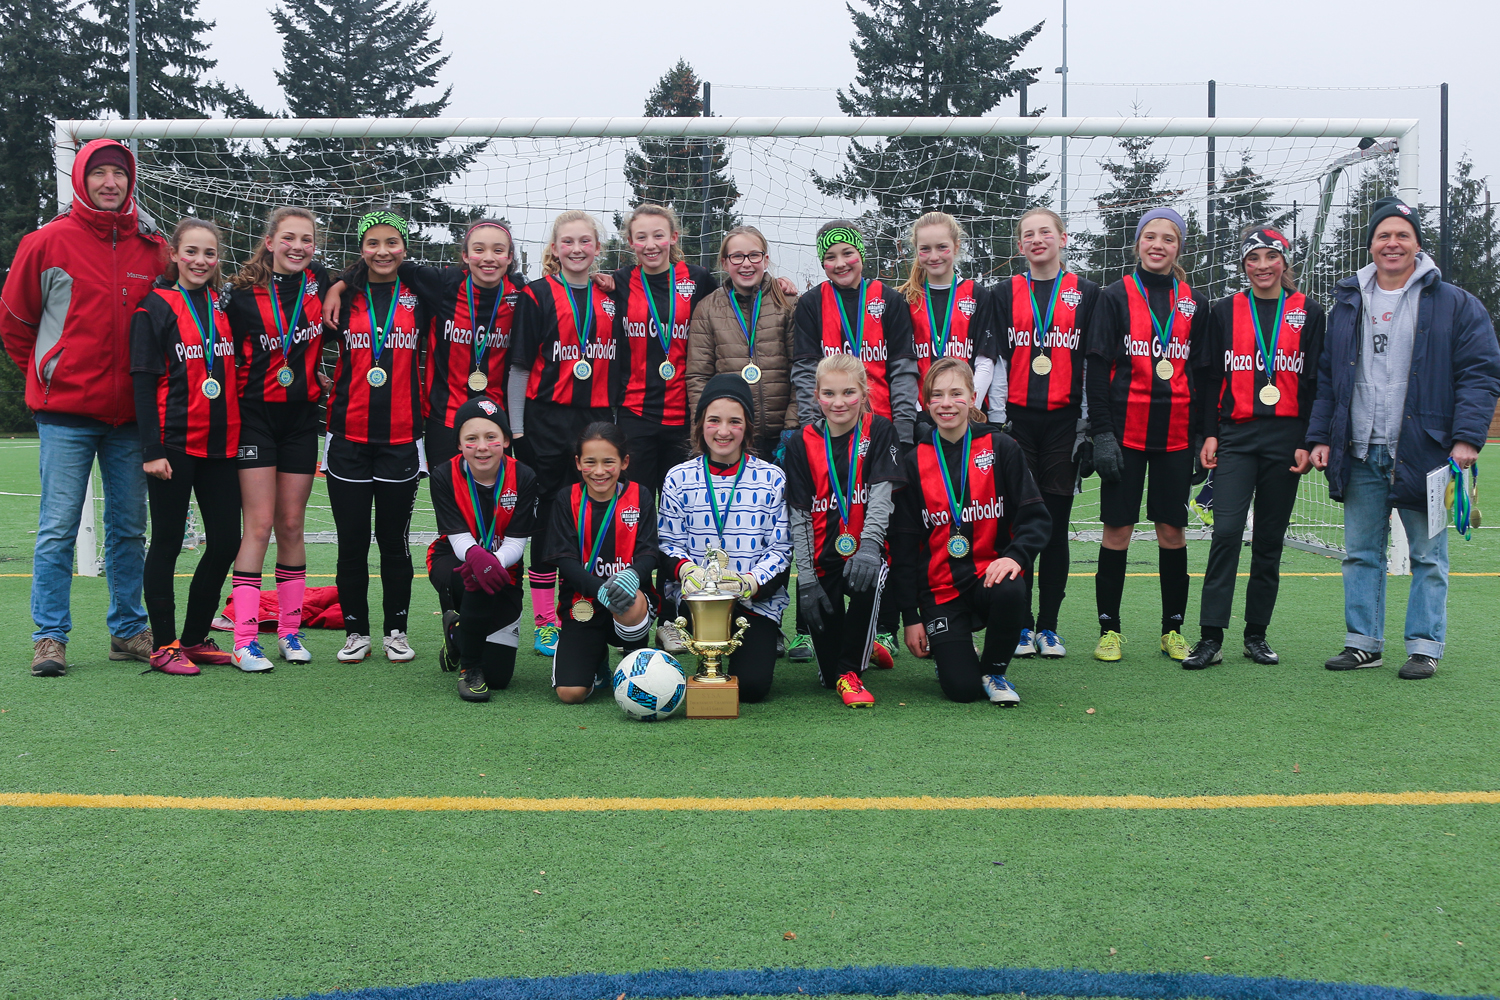 GU13 Jet City Panthers